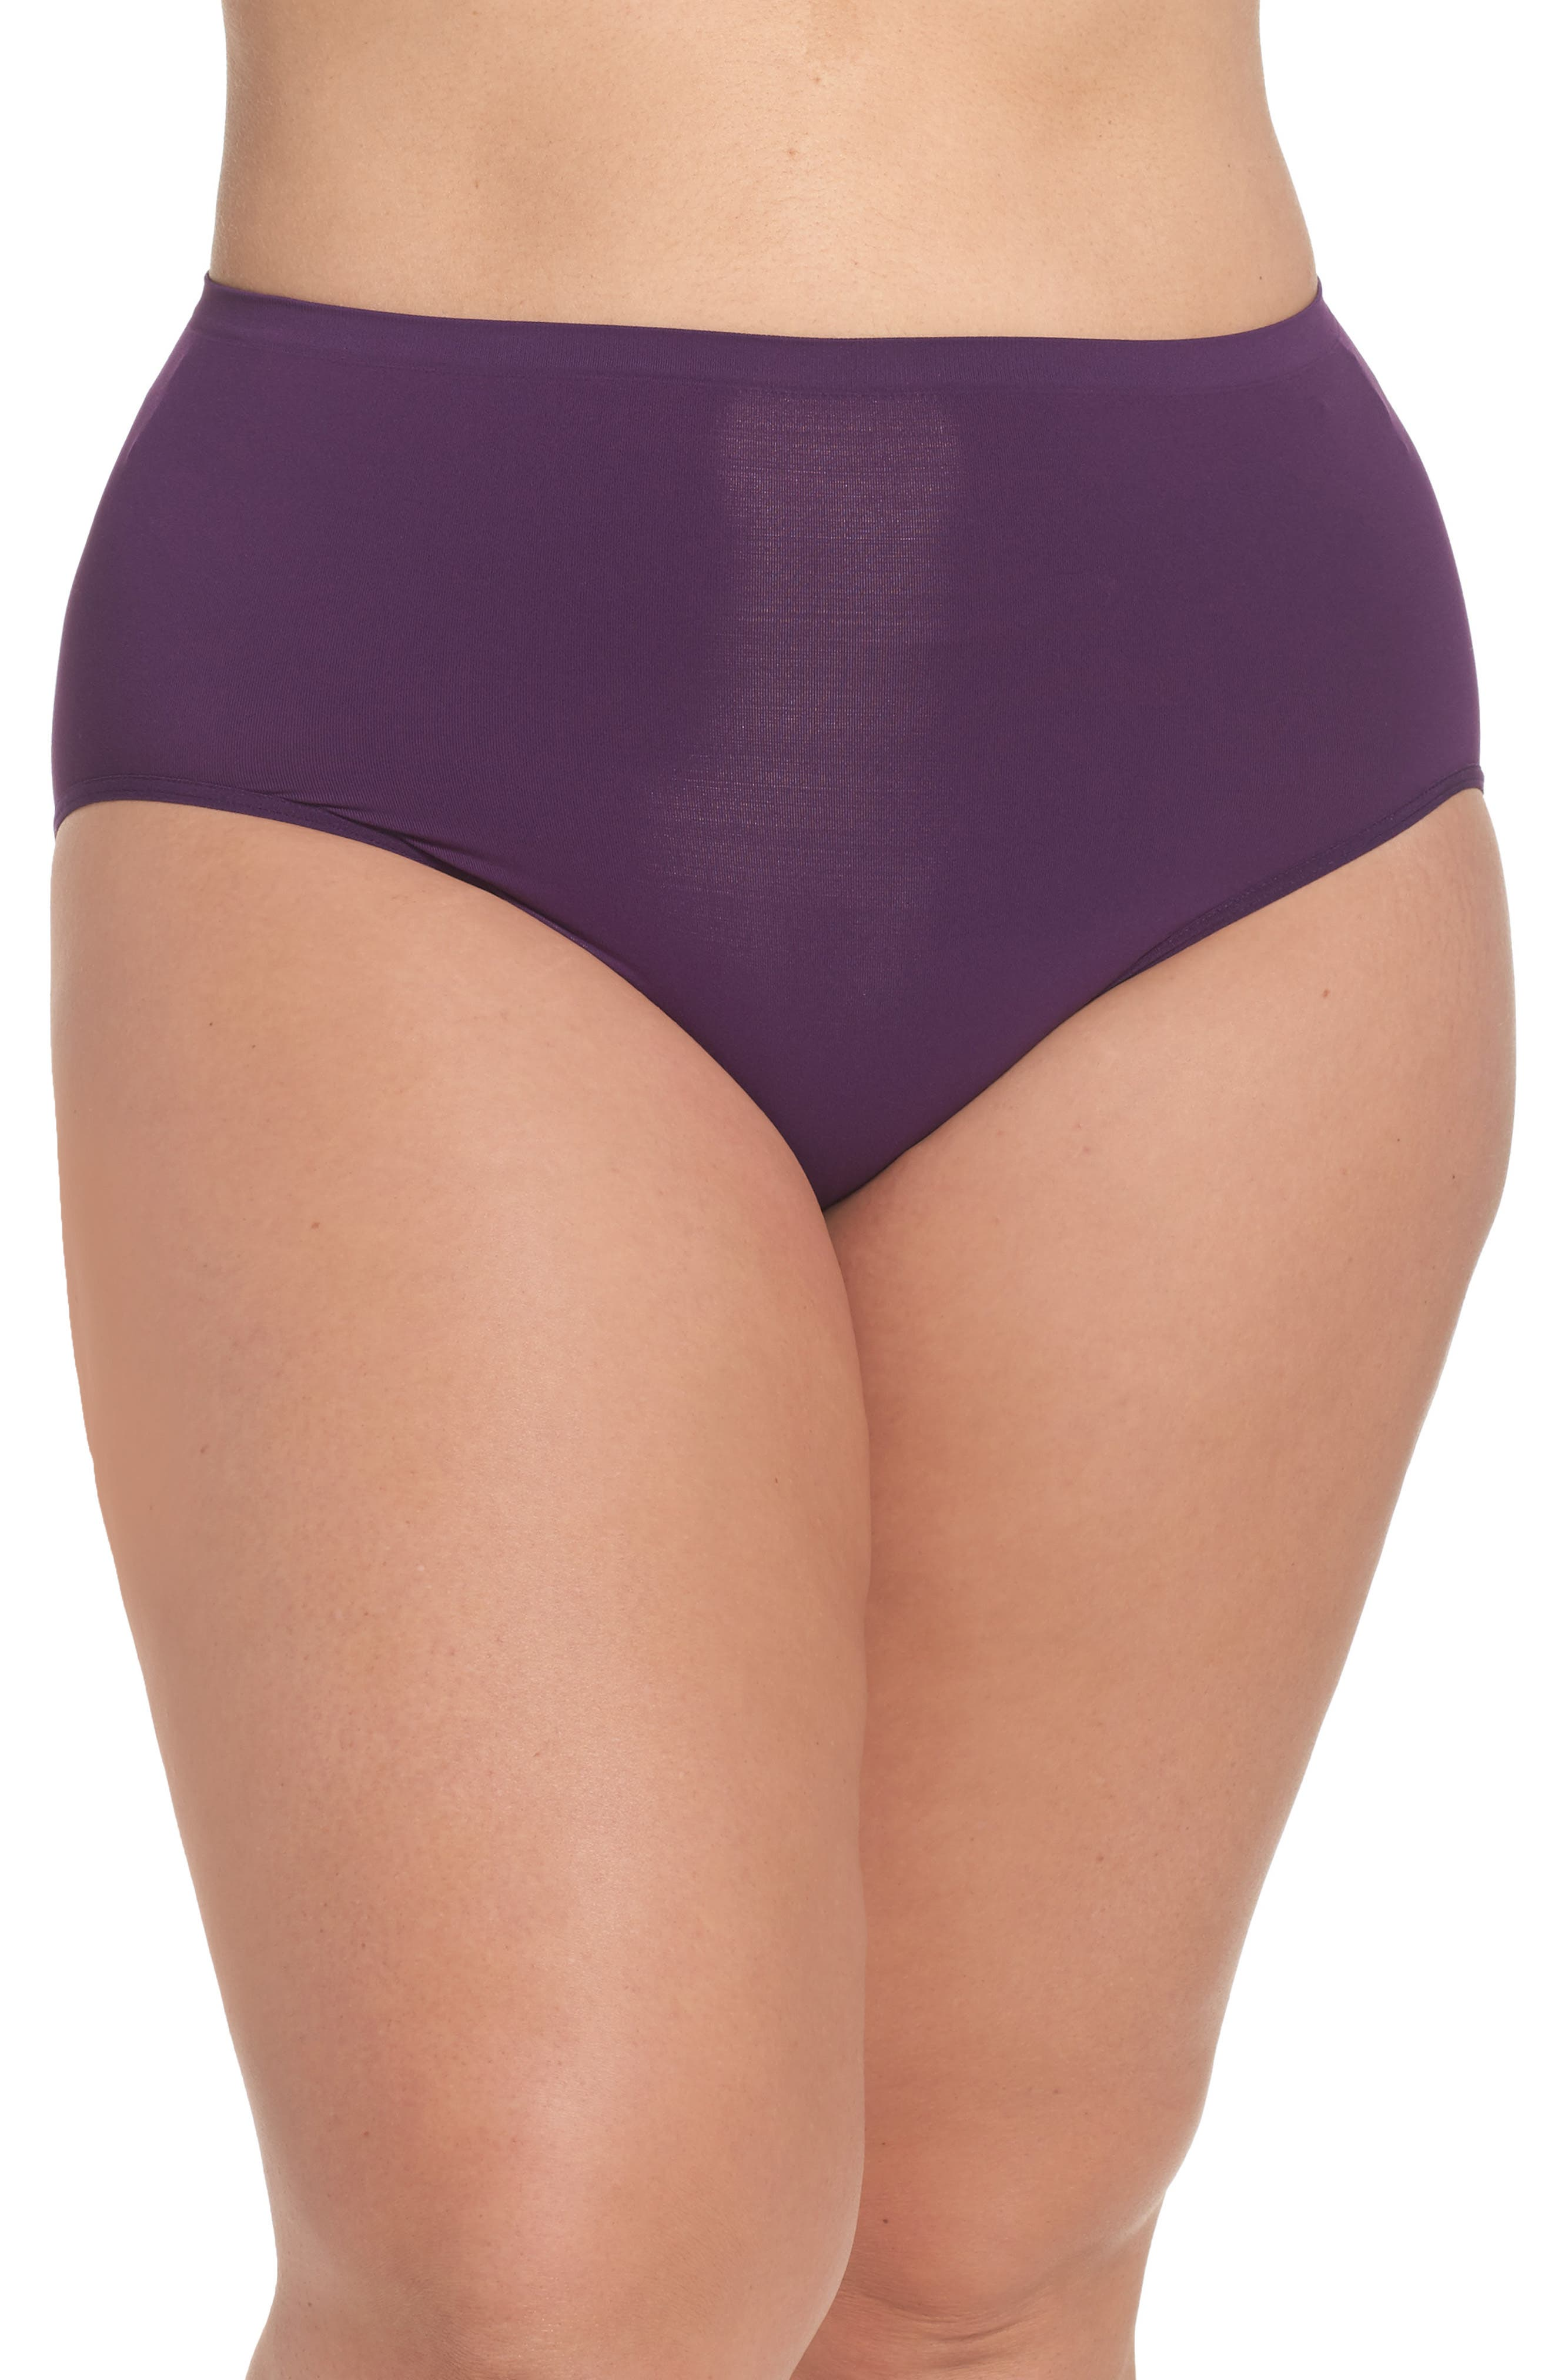 Nordstrom Lingerie Seamless Briefs (Plus Size) (3 for $33)